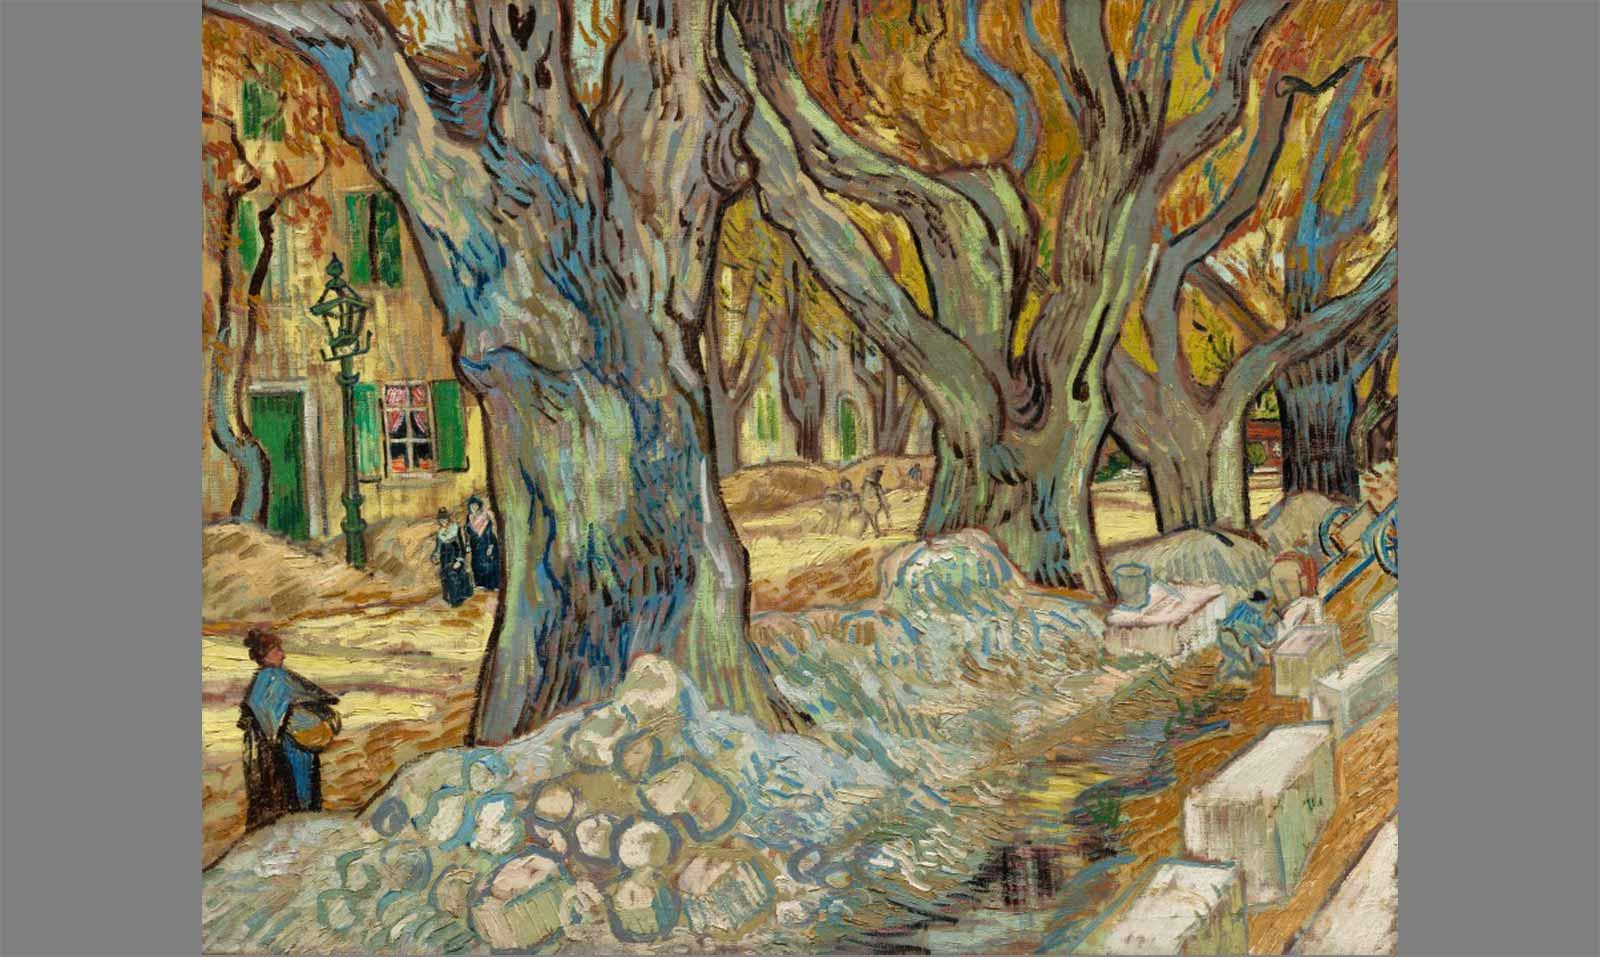 Vincent van Gogh, The Large Plane Trees (Road Menders at Saint-Rémy), 1889. Oil on fabric.